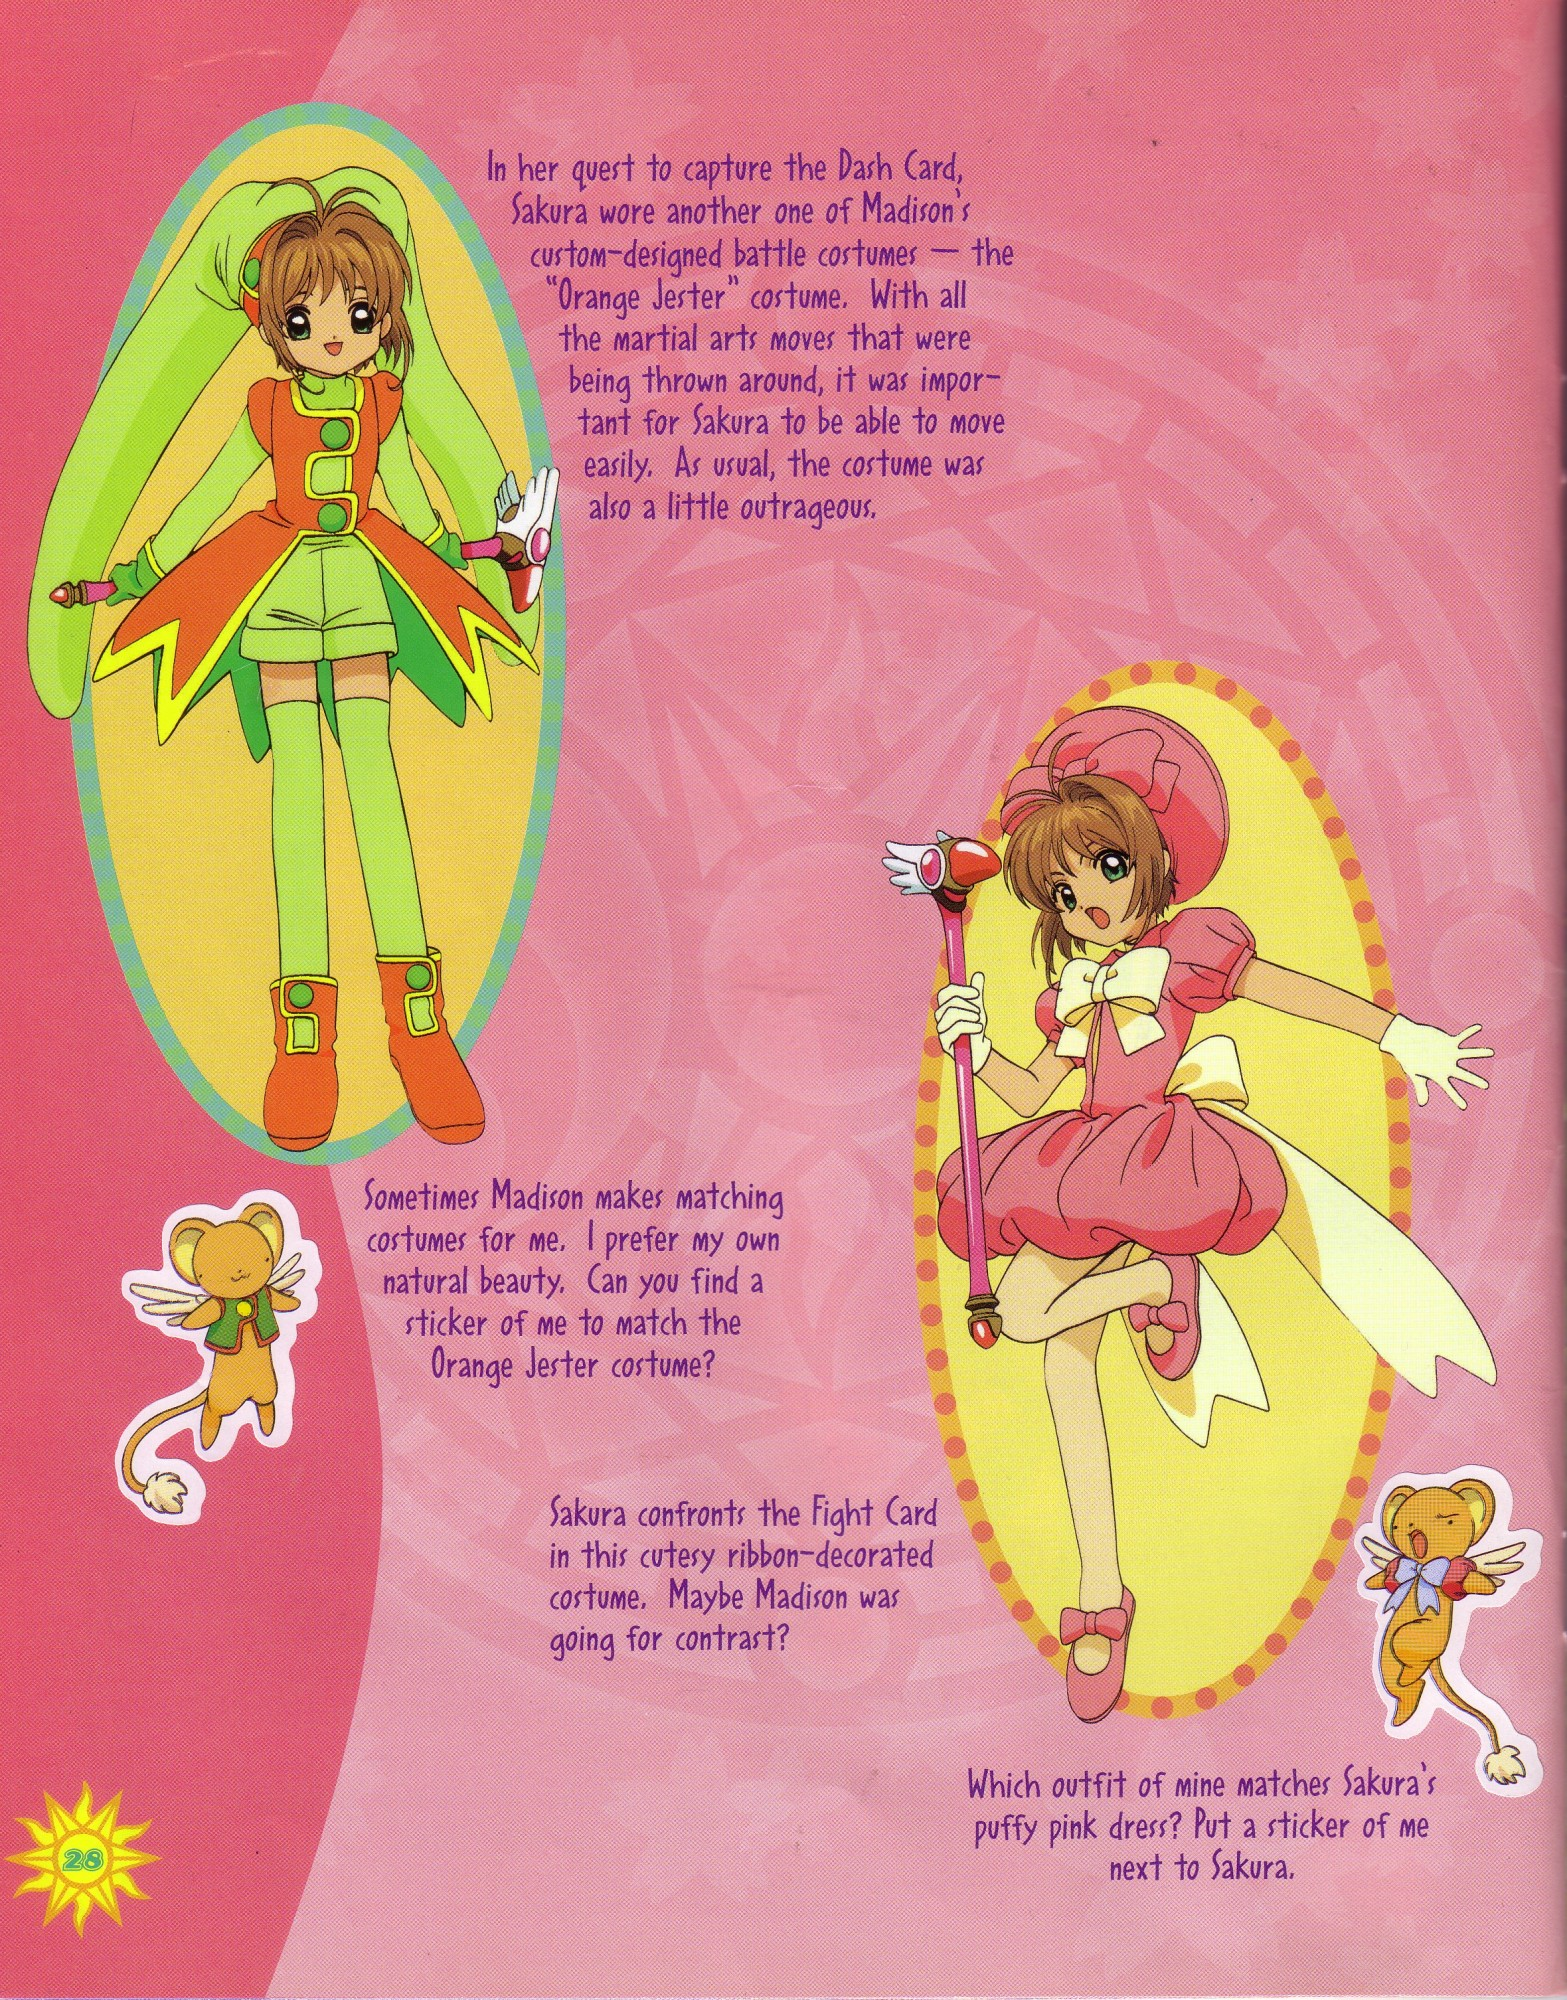 meet the cardcaptors sticker storybook cardcaptor sakura image